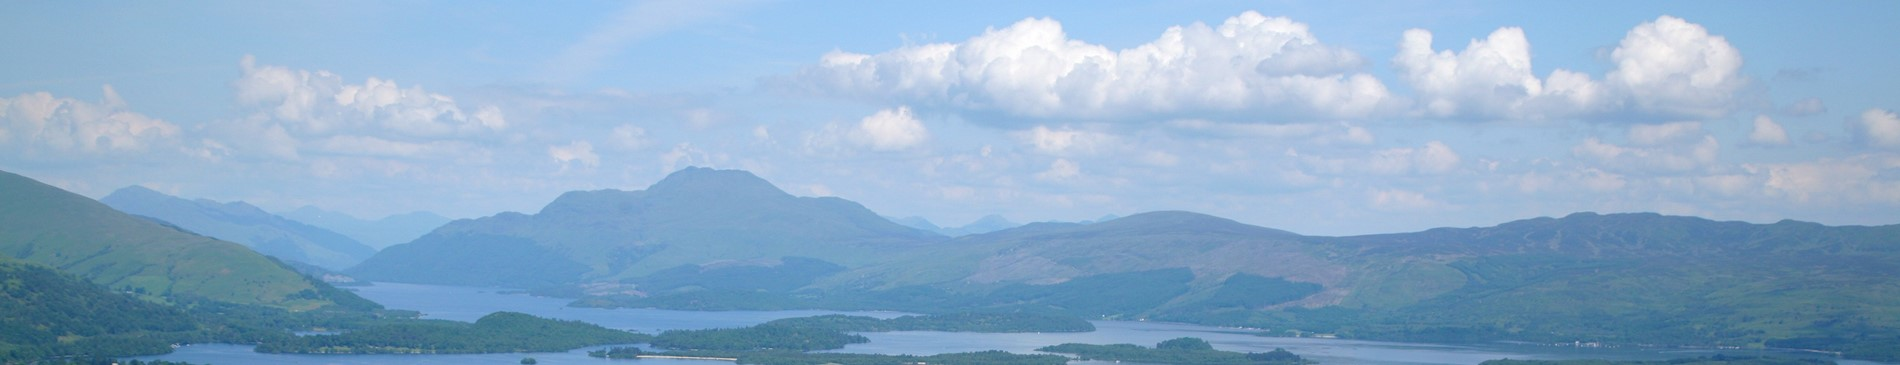 Views of Loch Lomond and the hills in the back ground